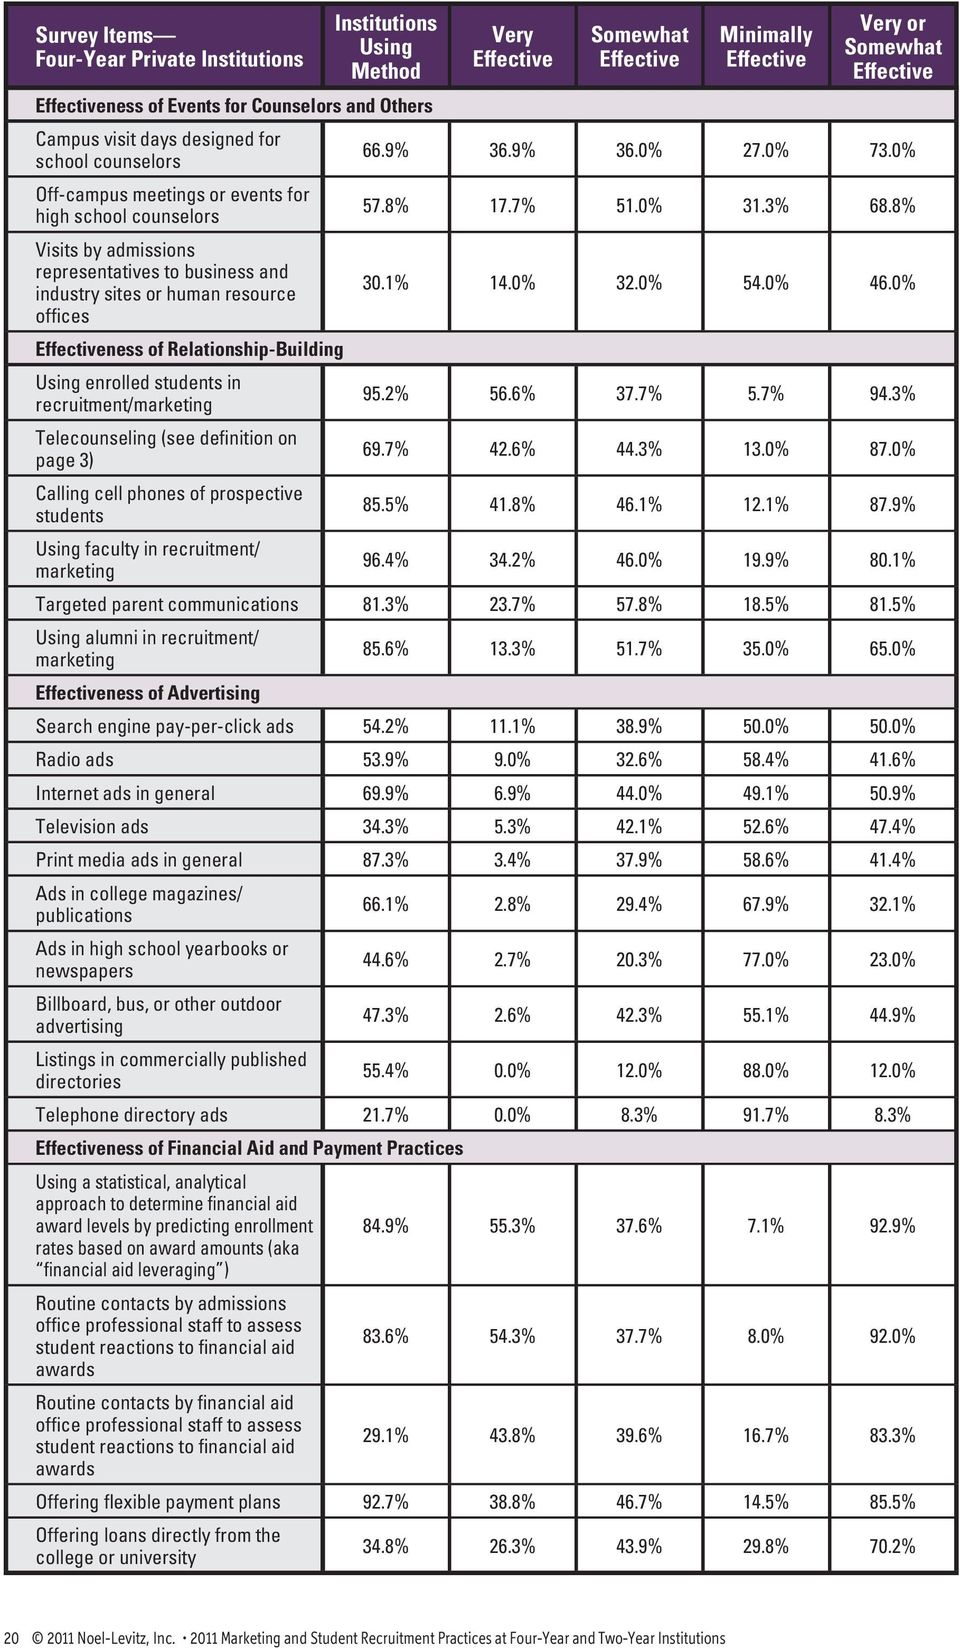 0% 54.0% 46.0% offices ness of Relationship-Building Using enrolled in recruitment/marketing 95.2% 56.6% 37.7% 5.7% 94.3% Telecounseling (see definition on page 3) 69.7% 42.6% 44.3% 13.0% 87.